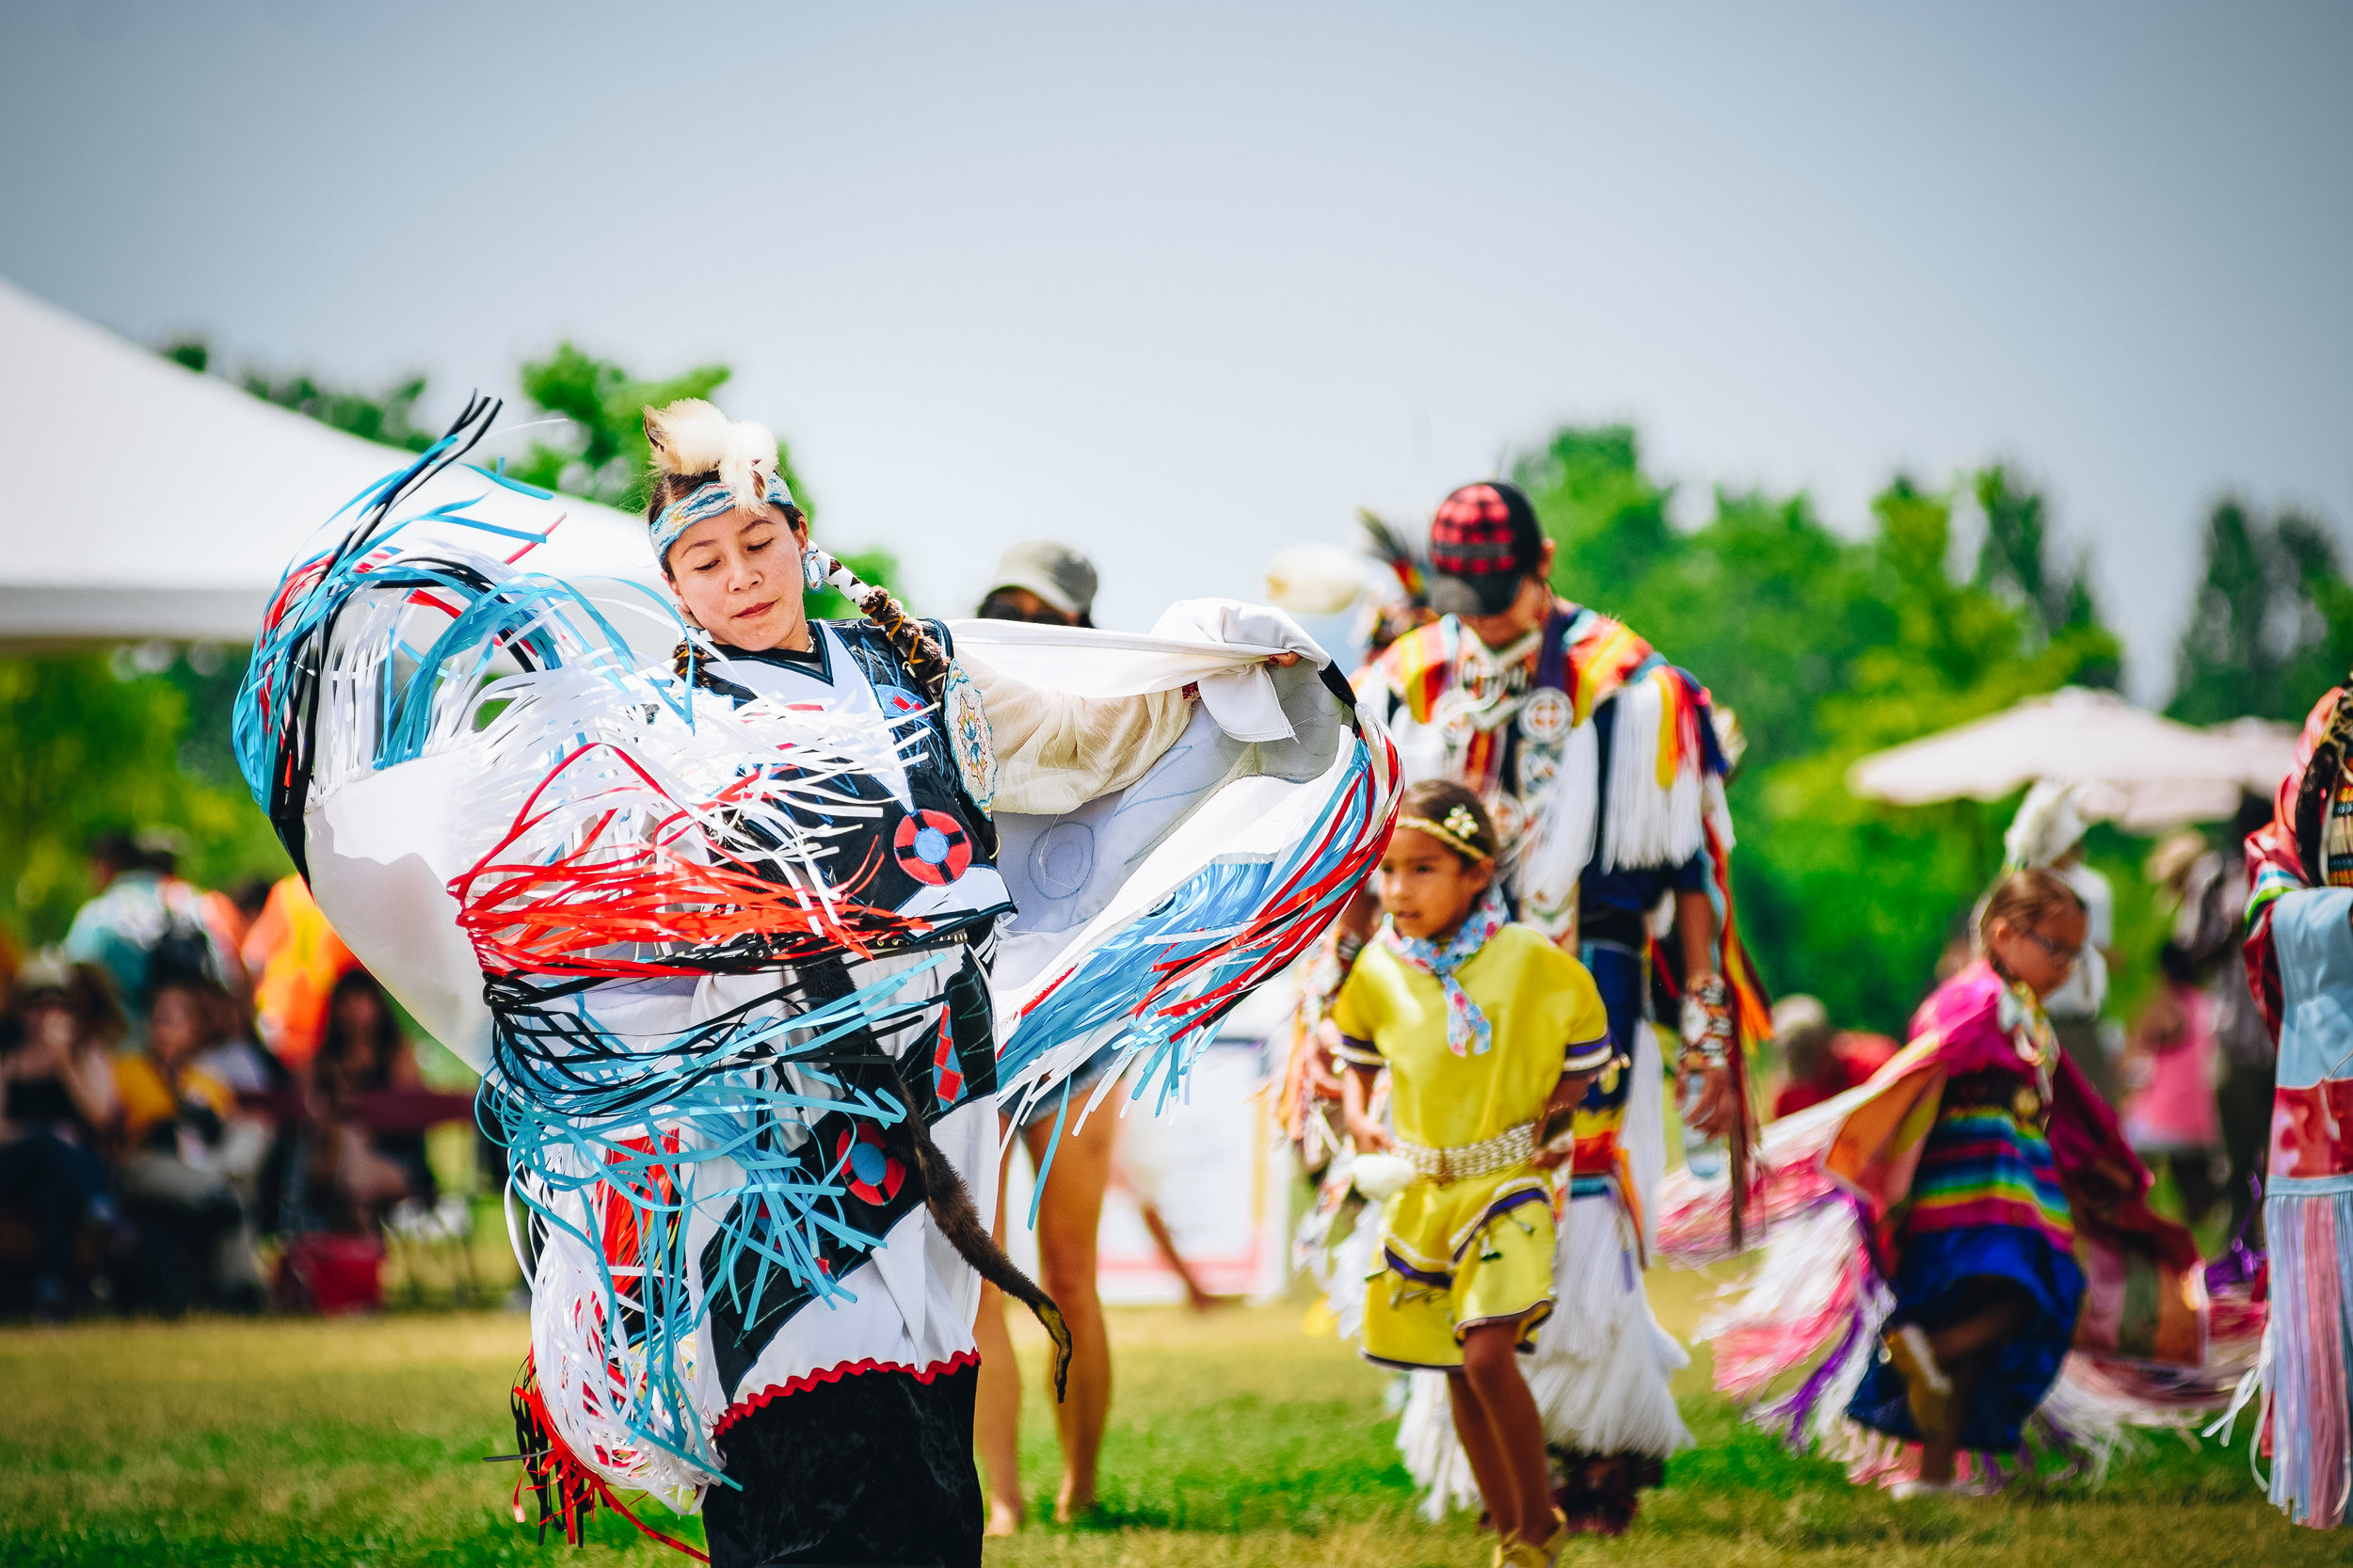 Masters Indigenous Games Pow Wow